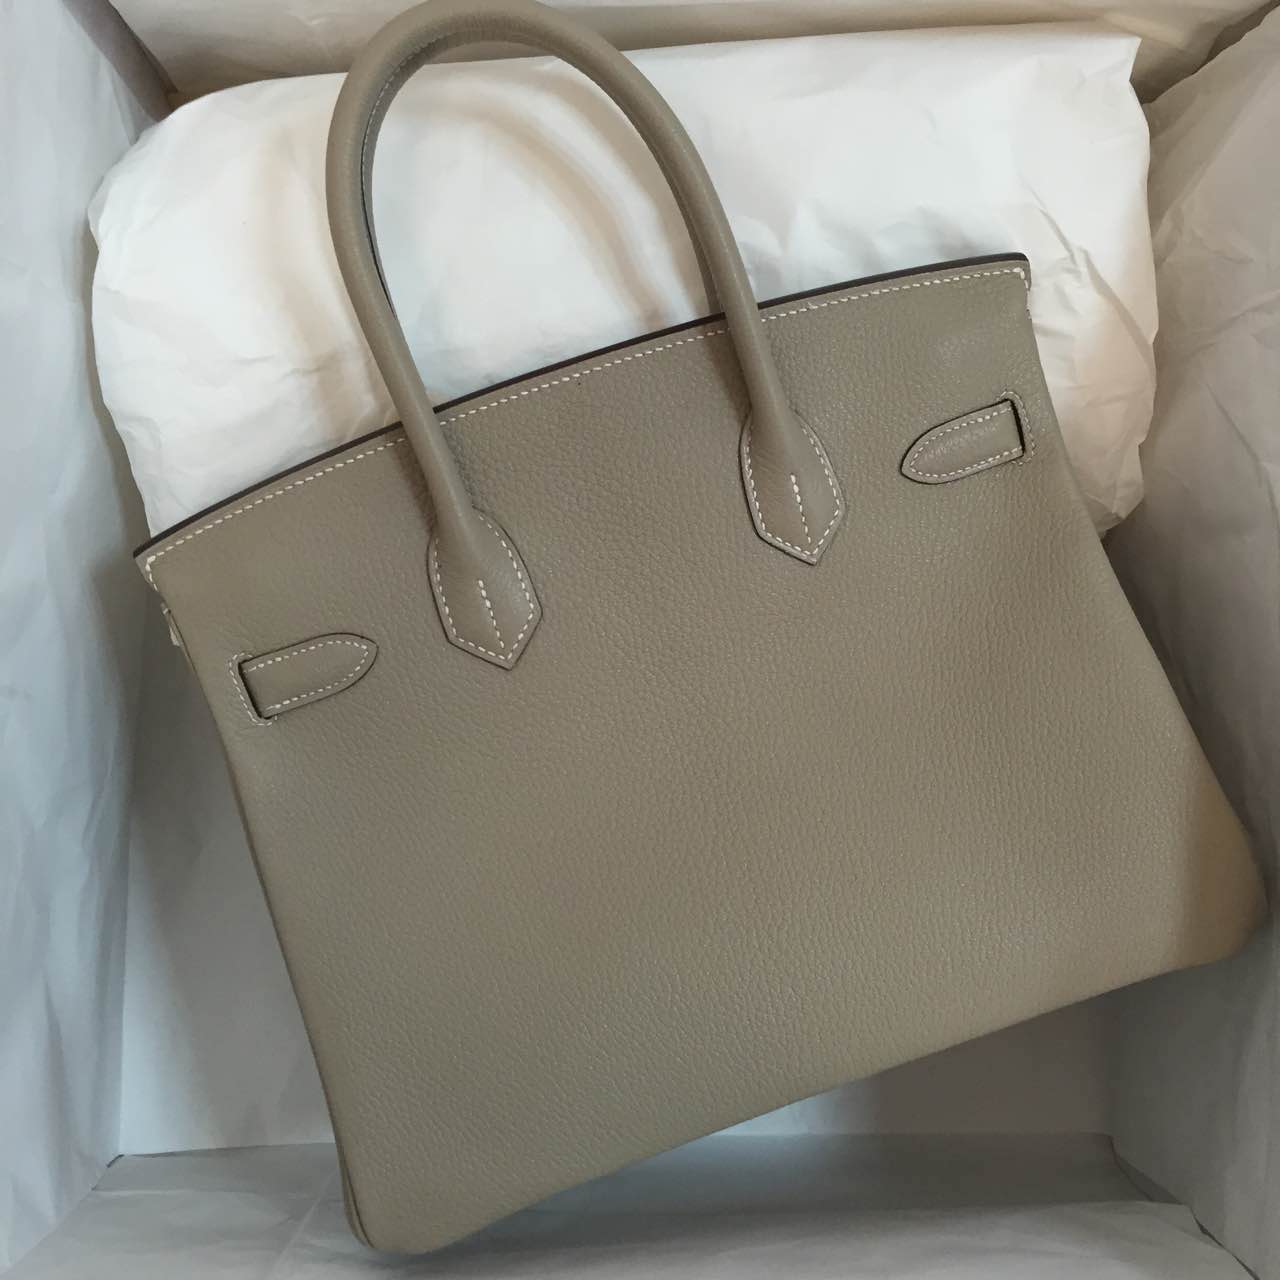 Discount Hermes Birkin30 Bag Light Grey Chevre Leather Silver Hardware